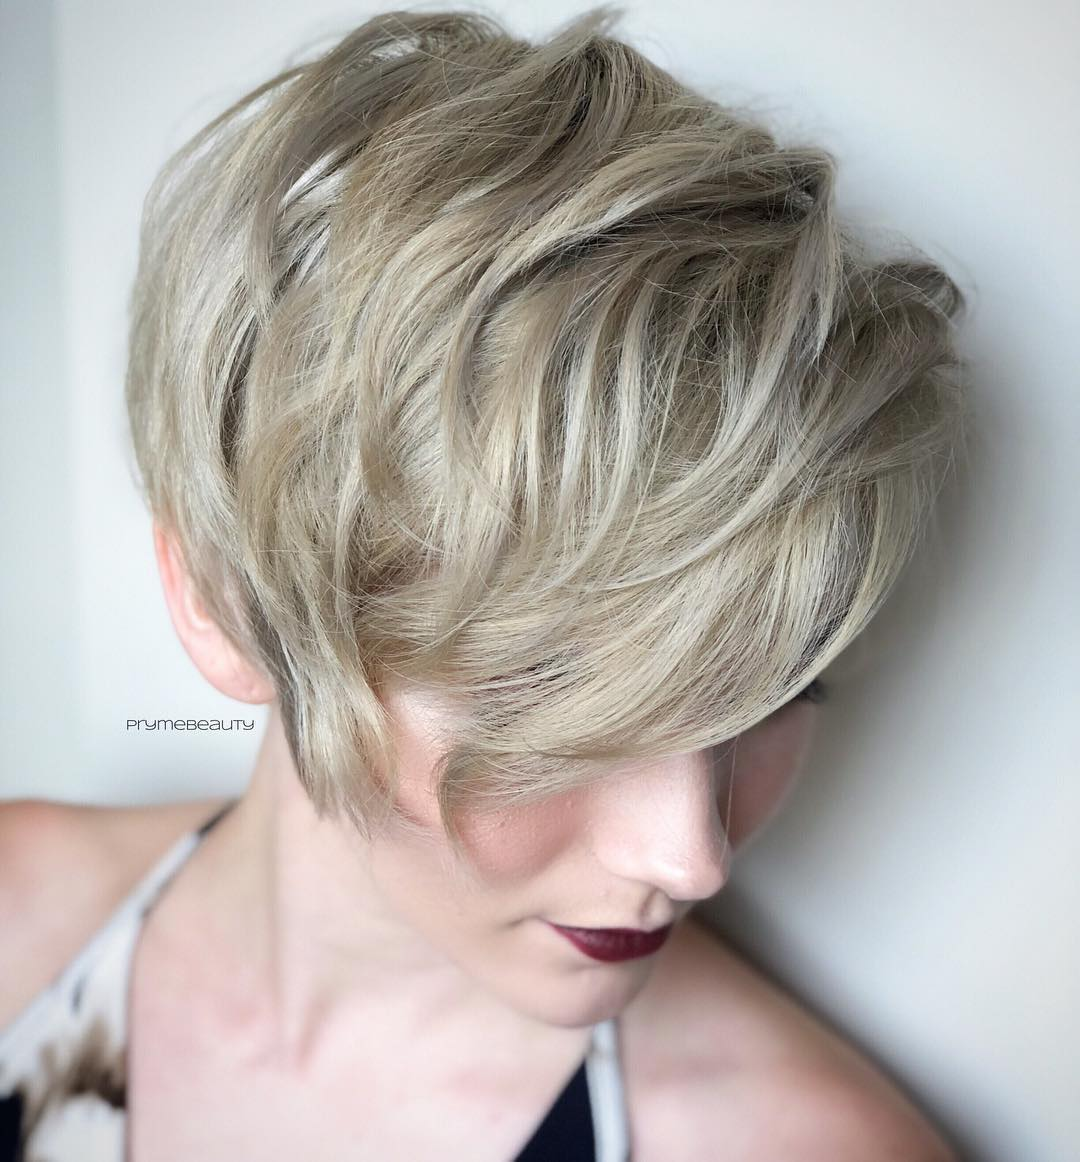 Top 10 Trendy Low Maintenance Short Layered Hairstyles 2020